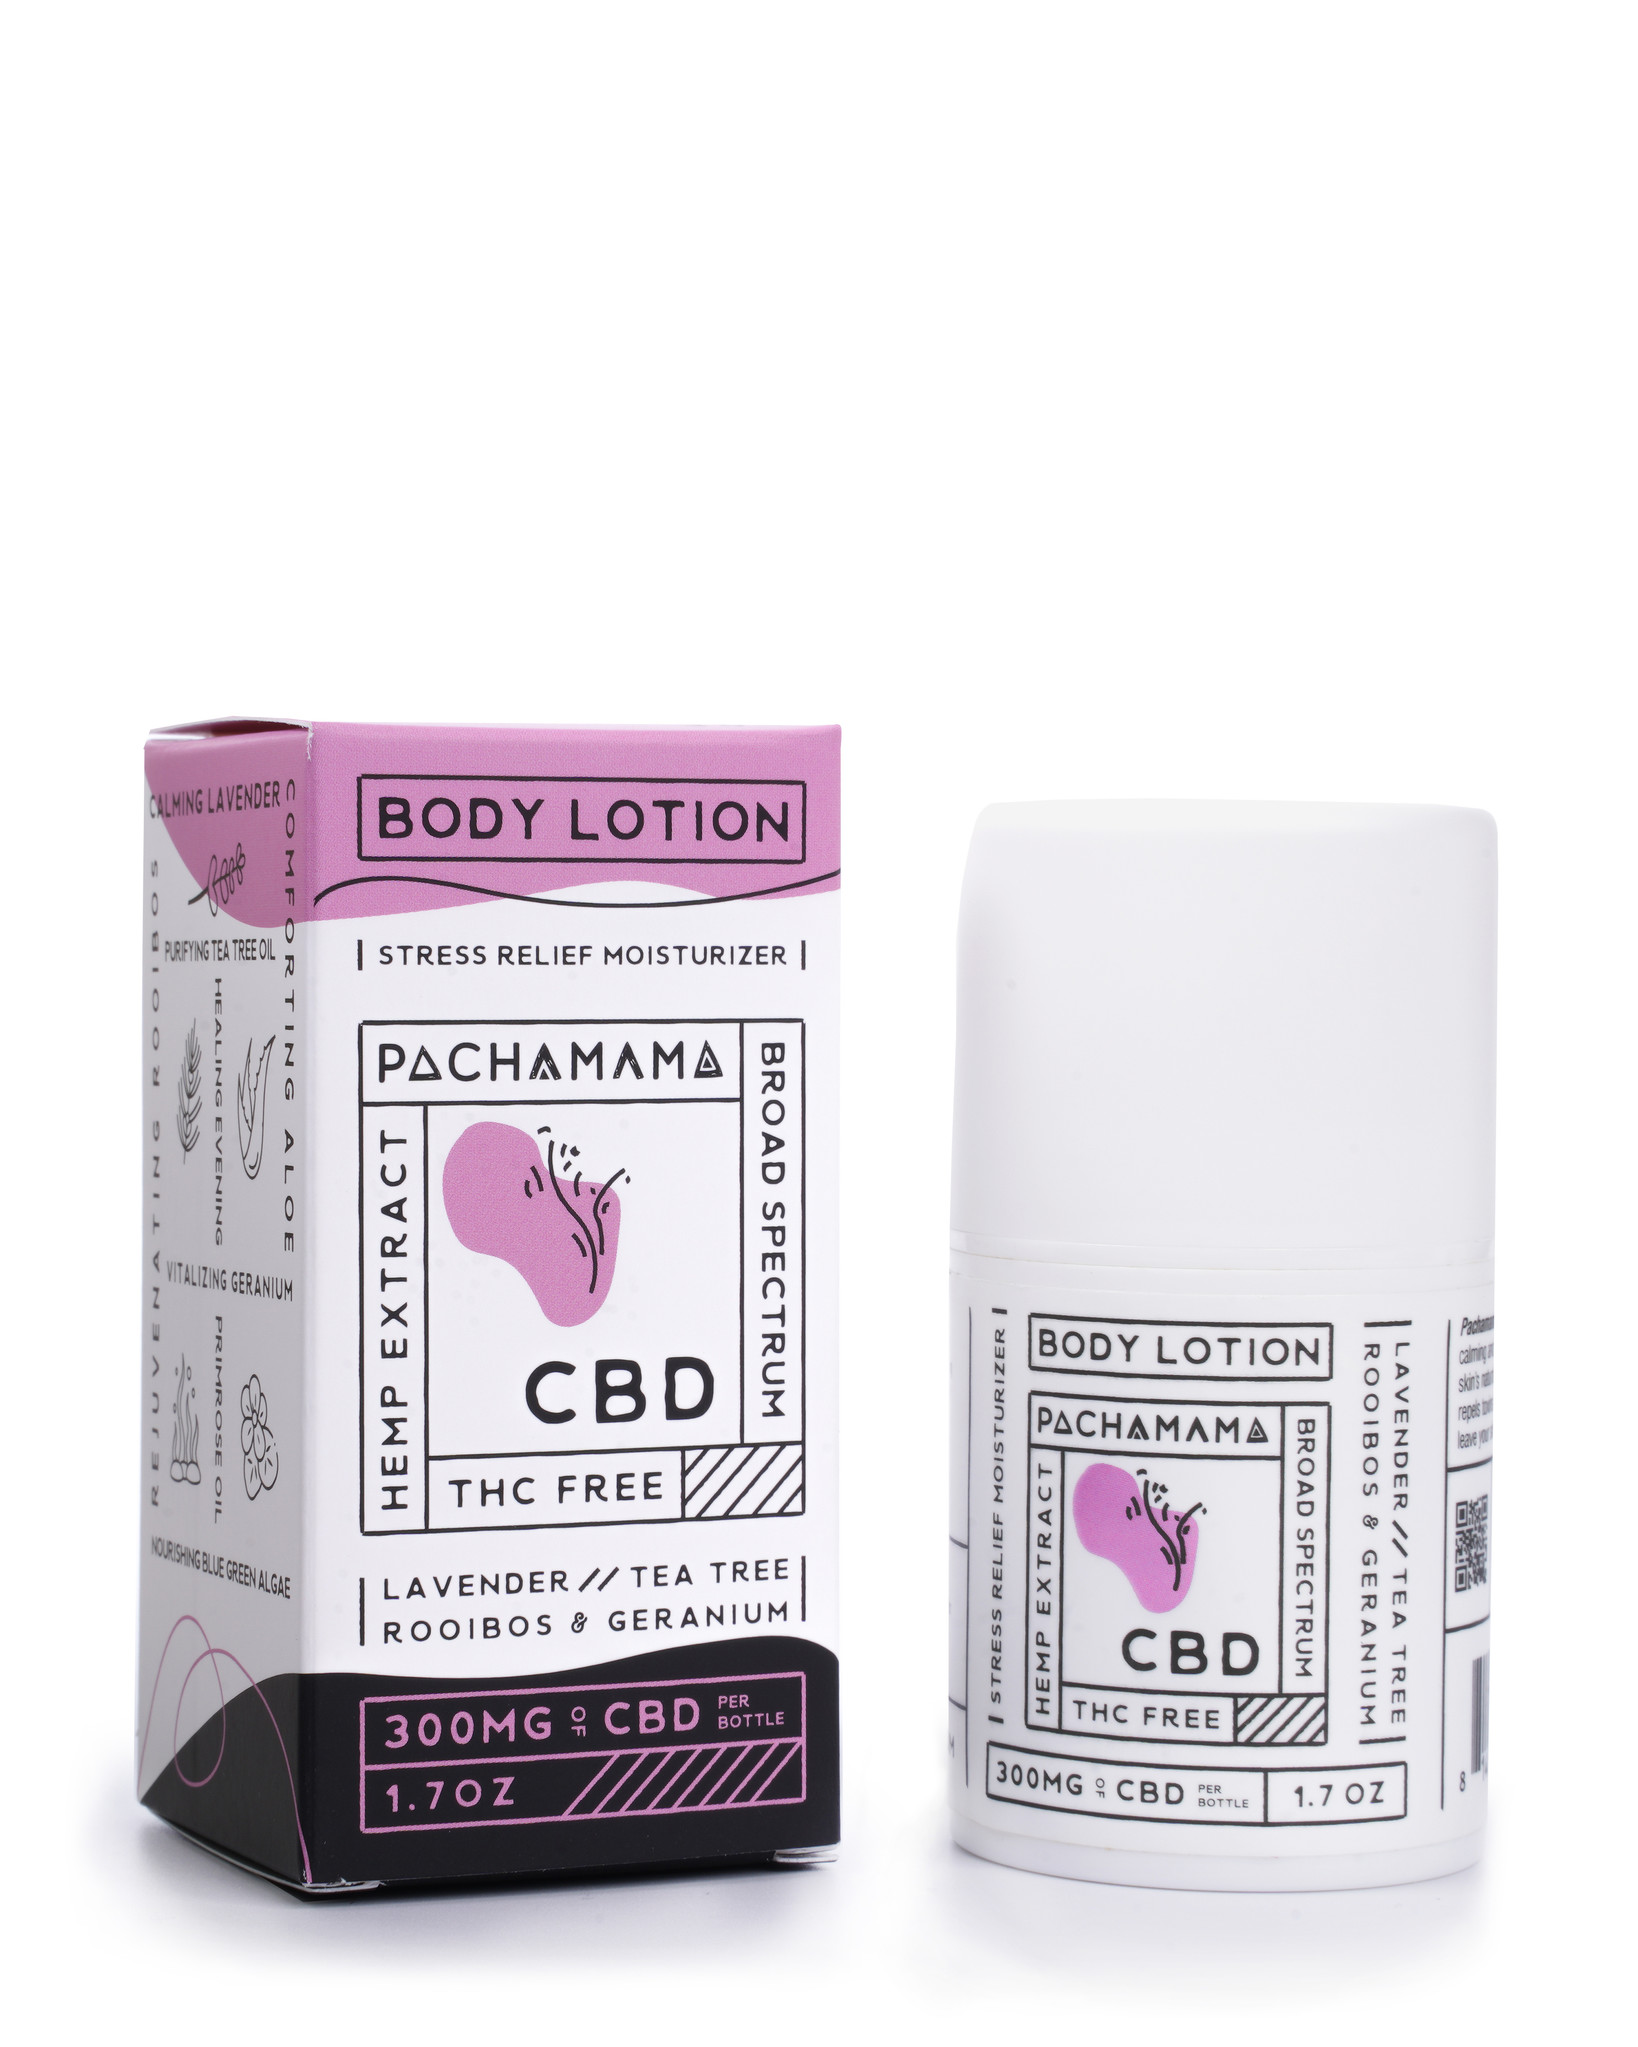 PachaMama CBD PACHAMAMA| BROAD SPECTRUM BODY LOTION | 300mg